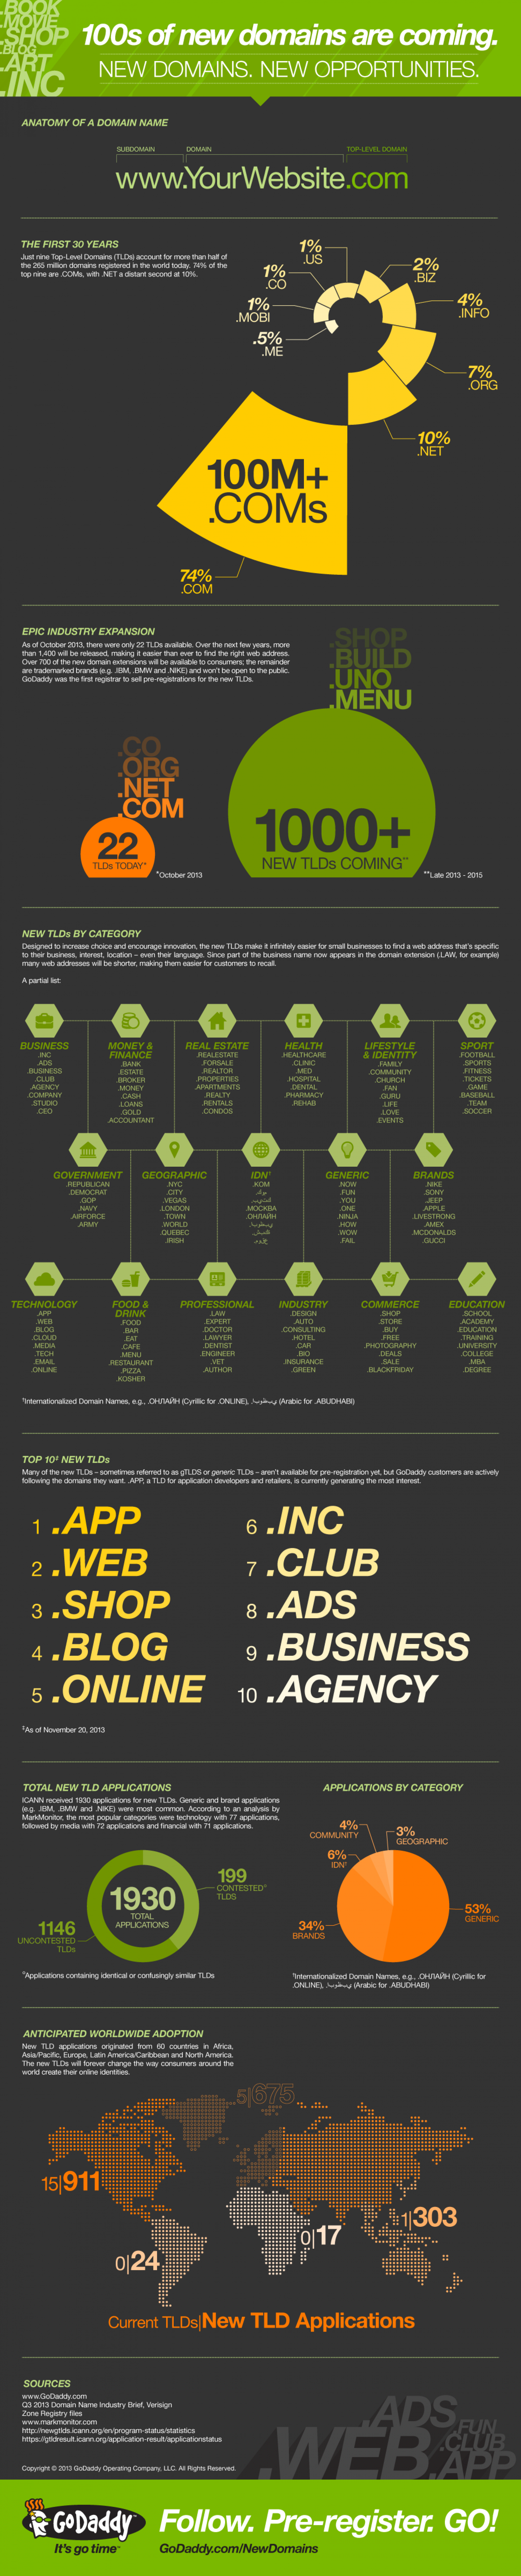 New Domains. New Opportunities. Infographic